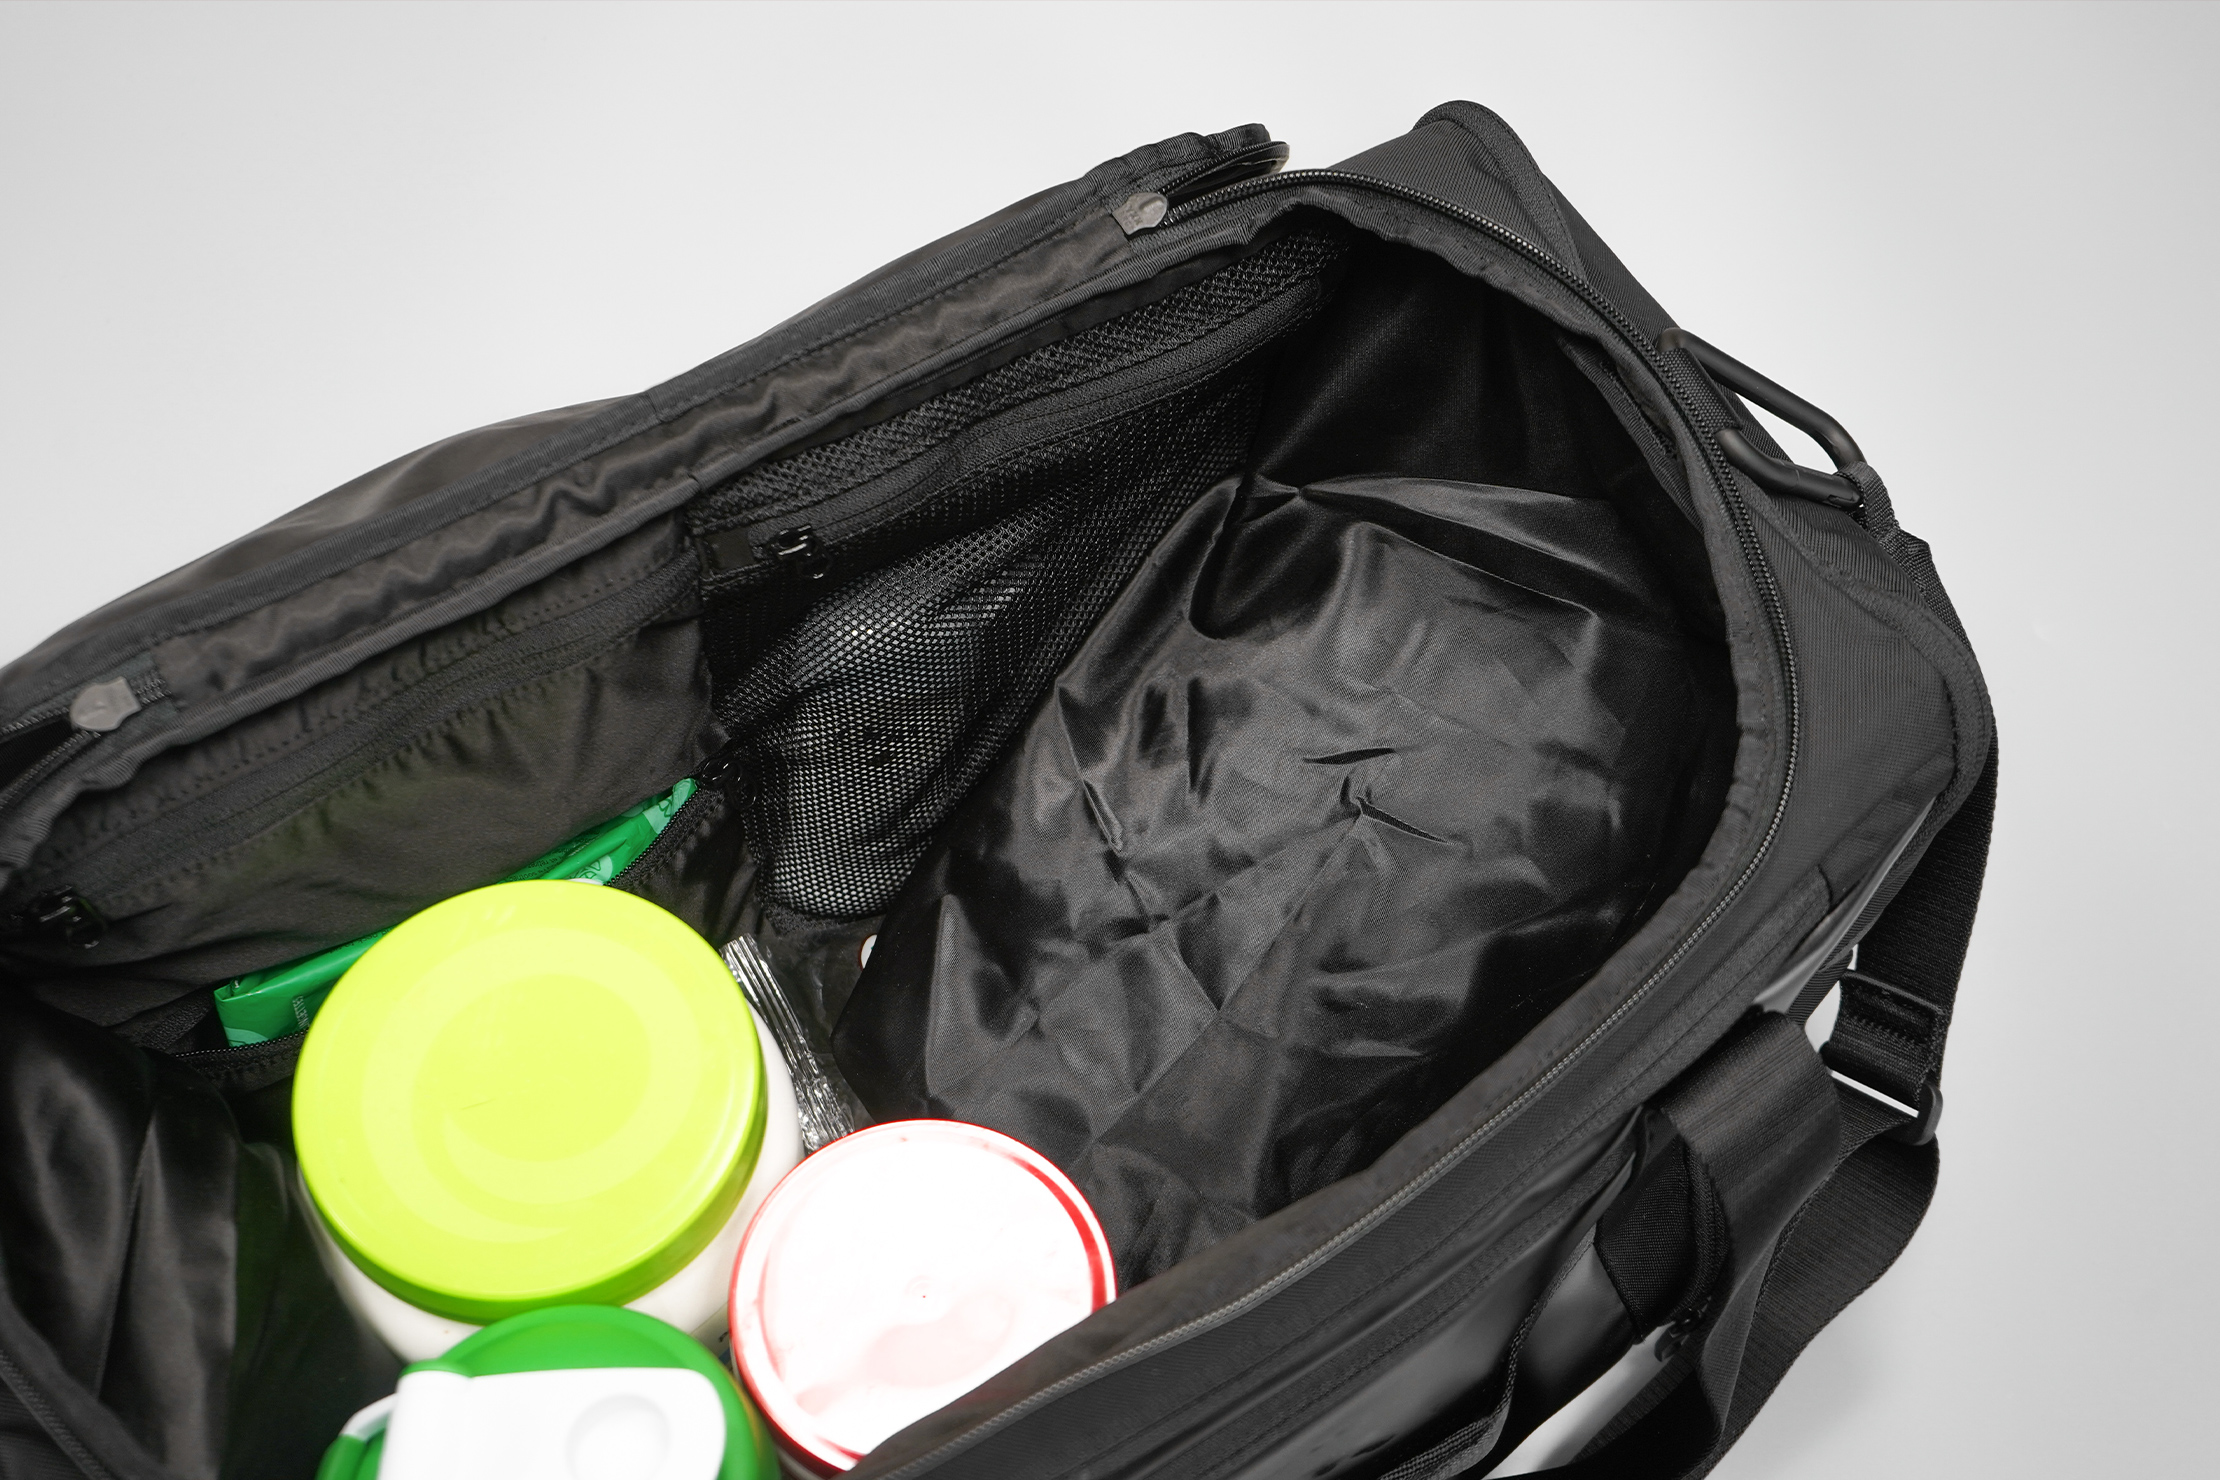 lululemon More Miles Duffle Shoe Compartment in Bag